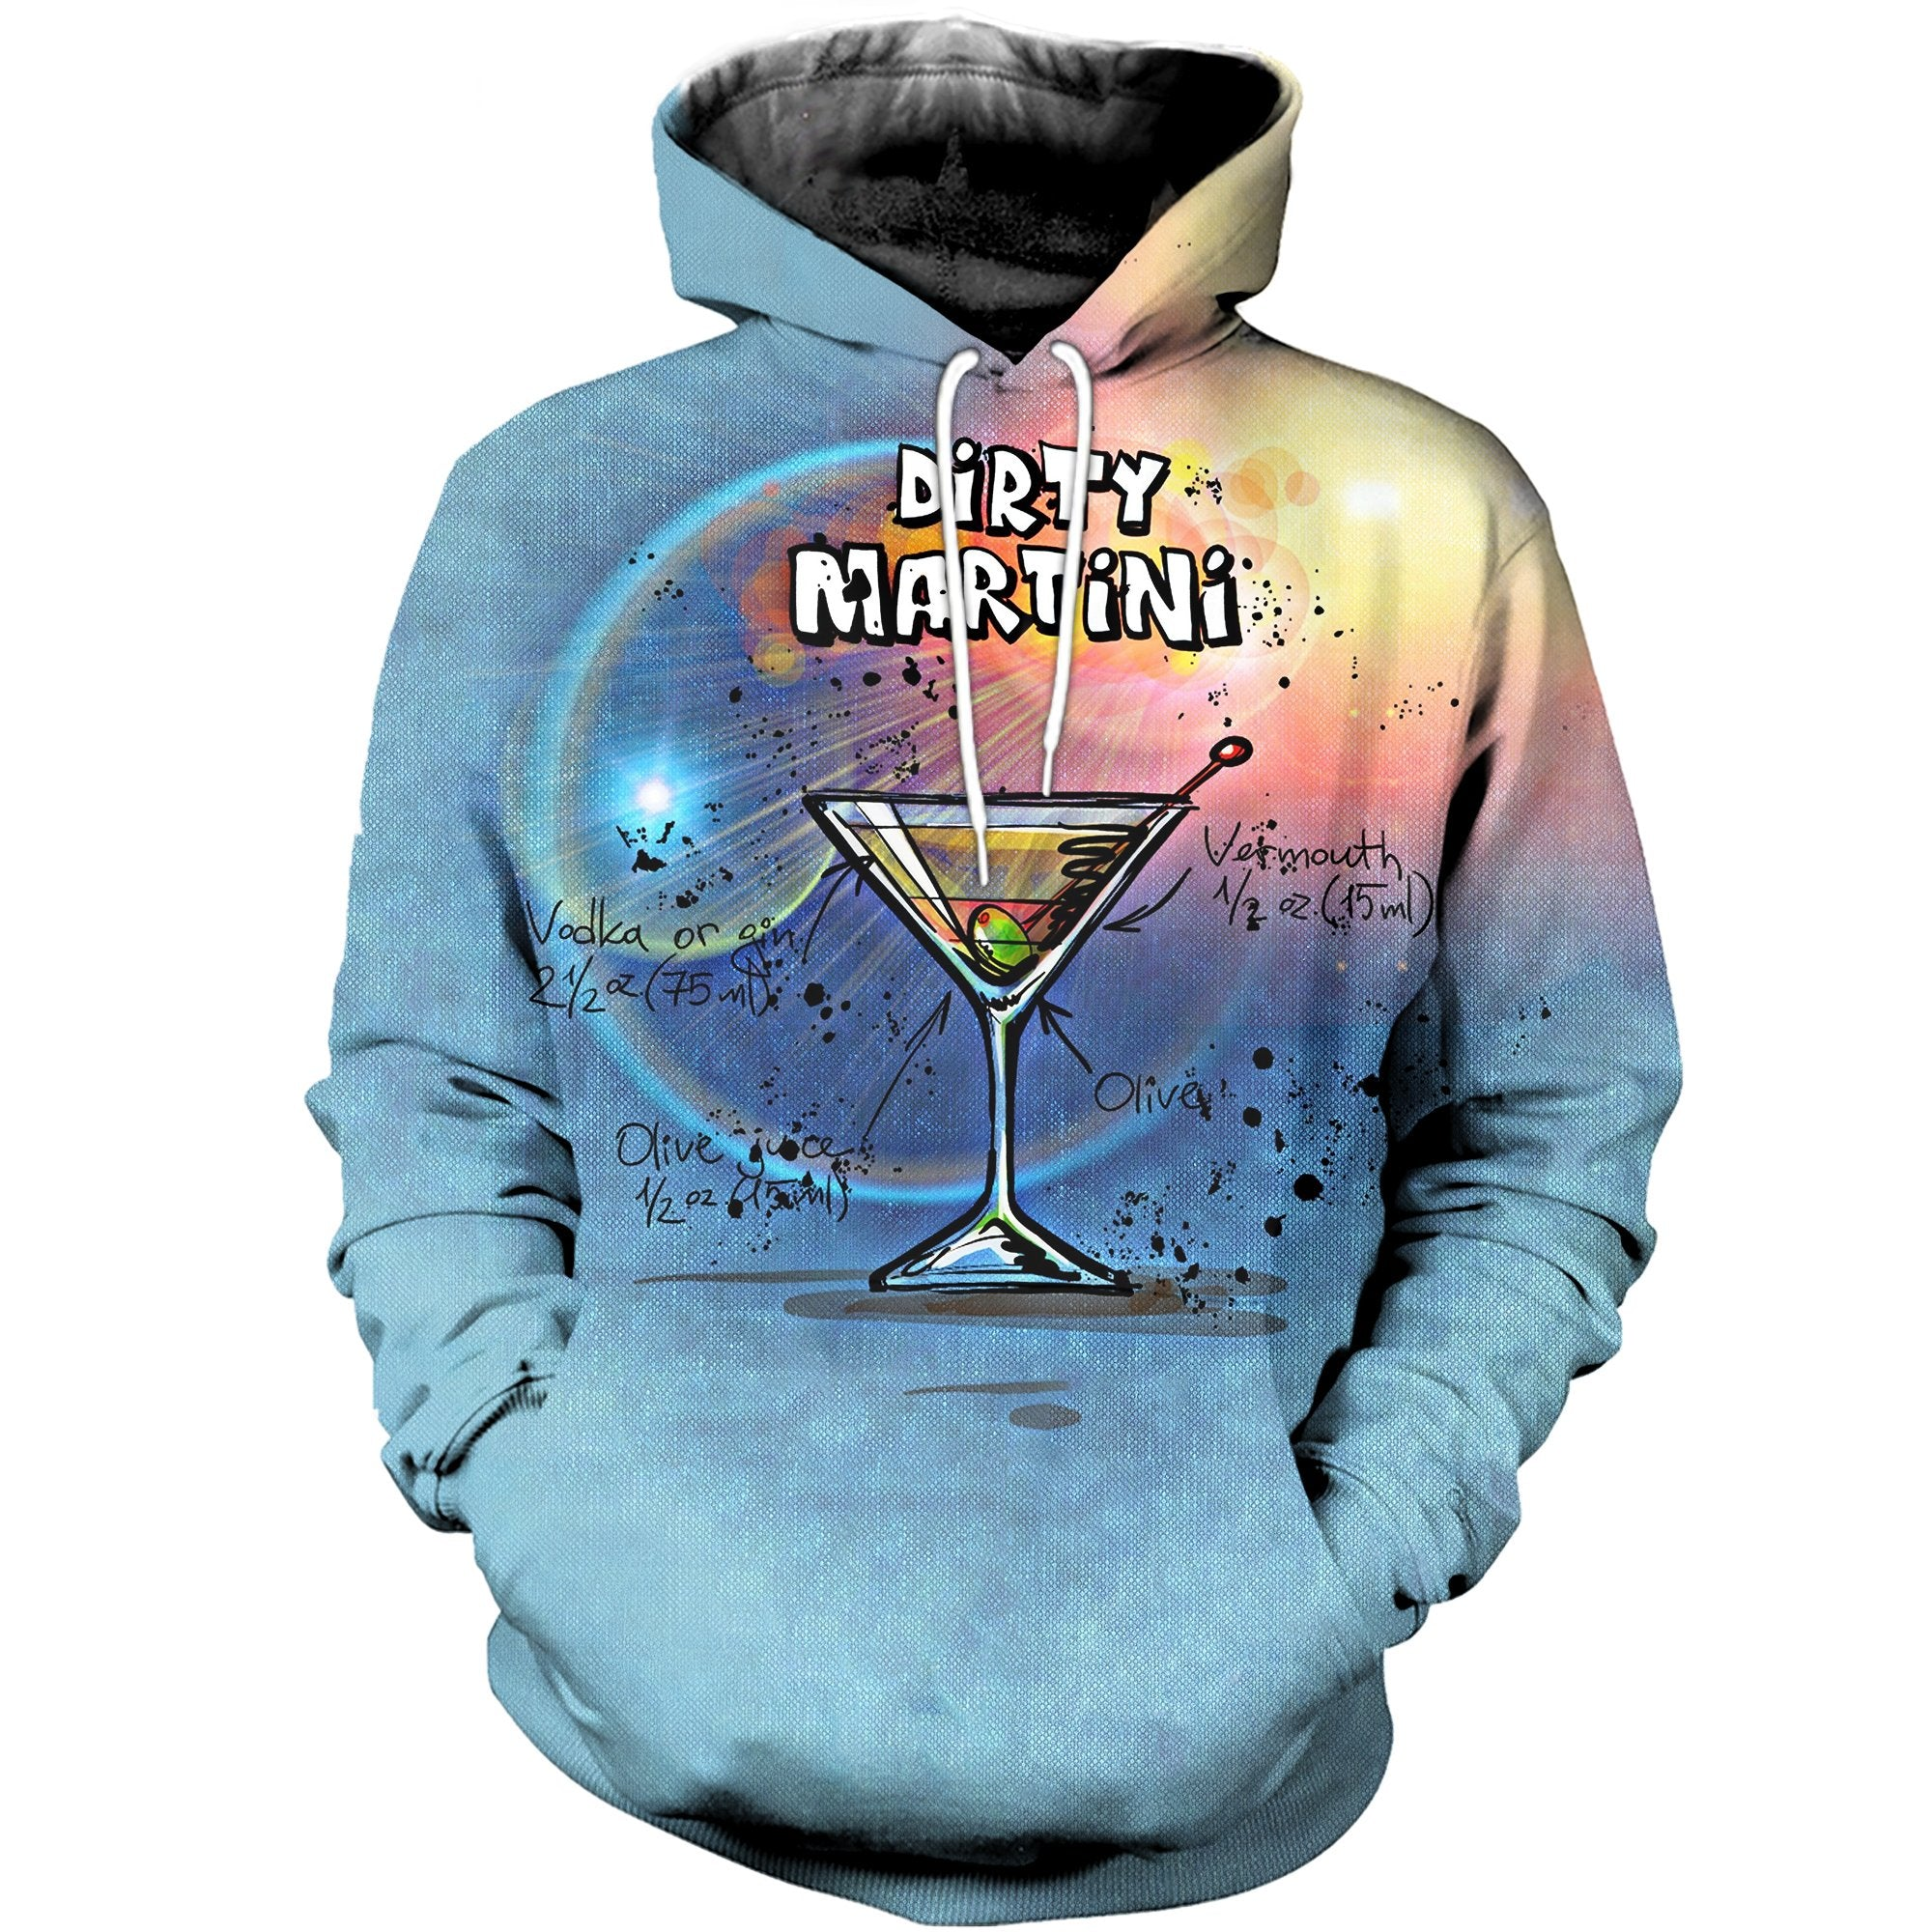 3D printed Martini cocktail T-shirt Hoodie SCTL180403